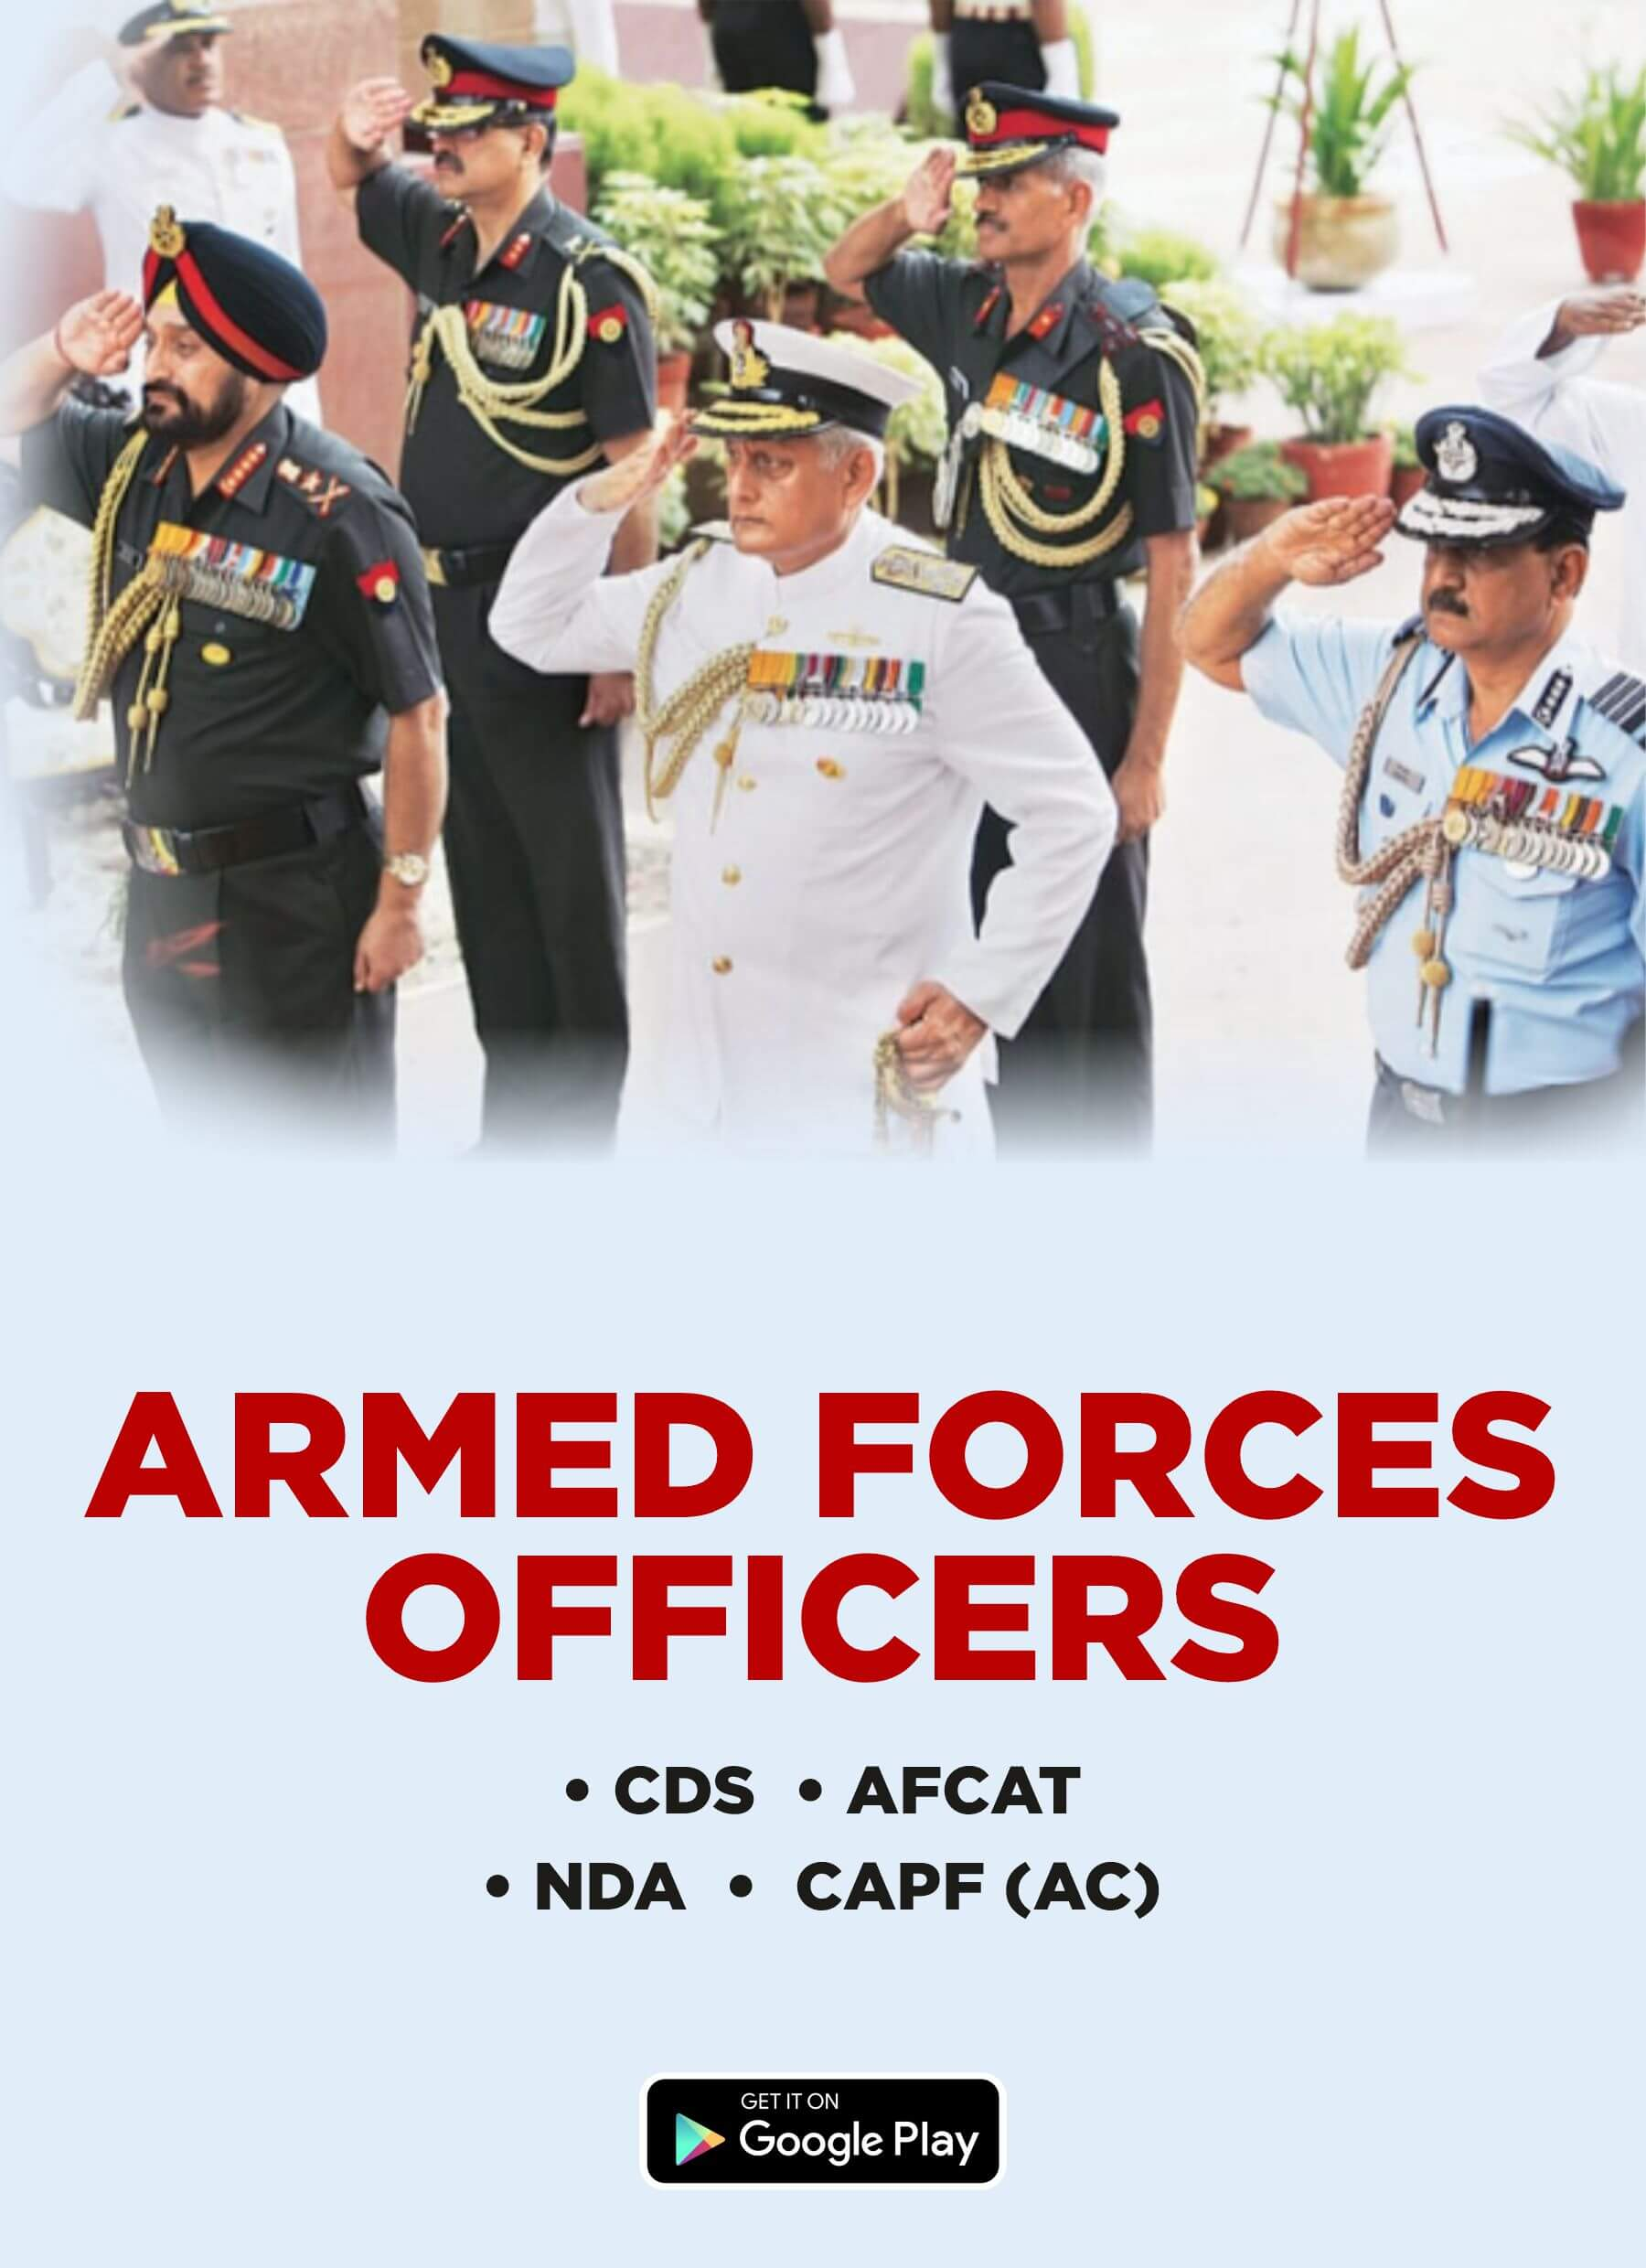 Armed Forces Officer